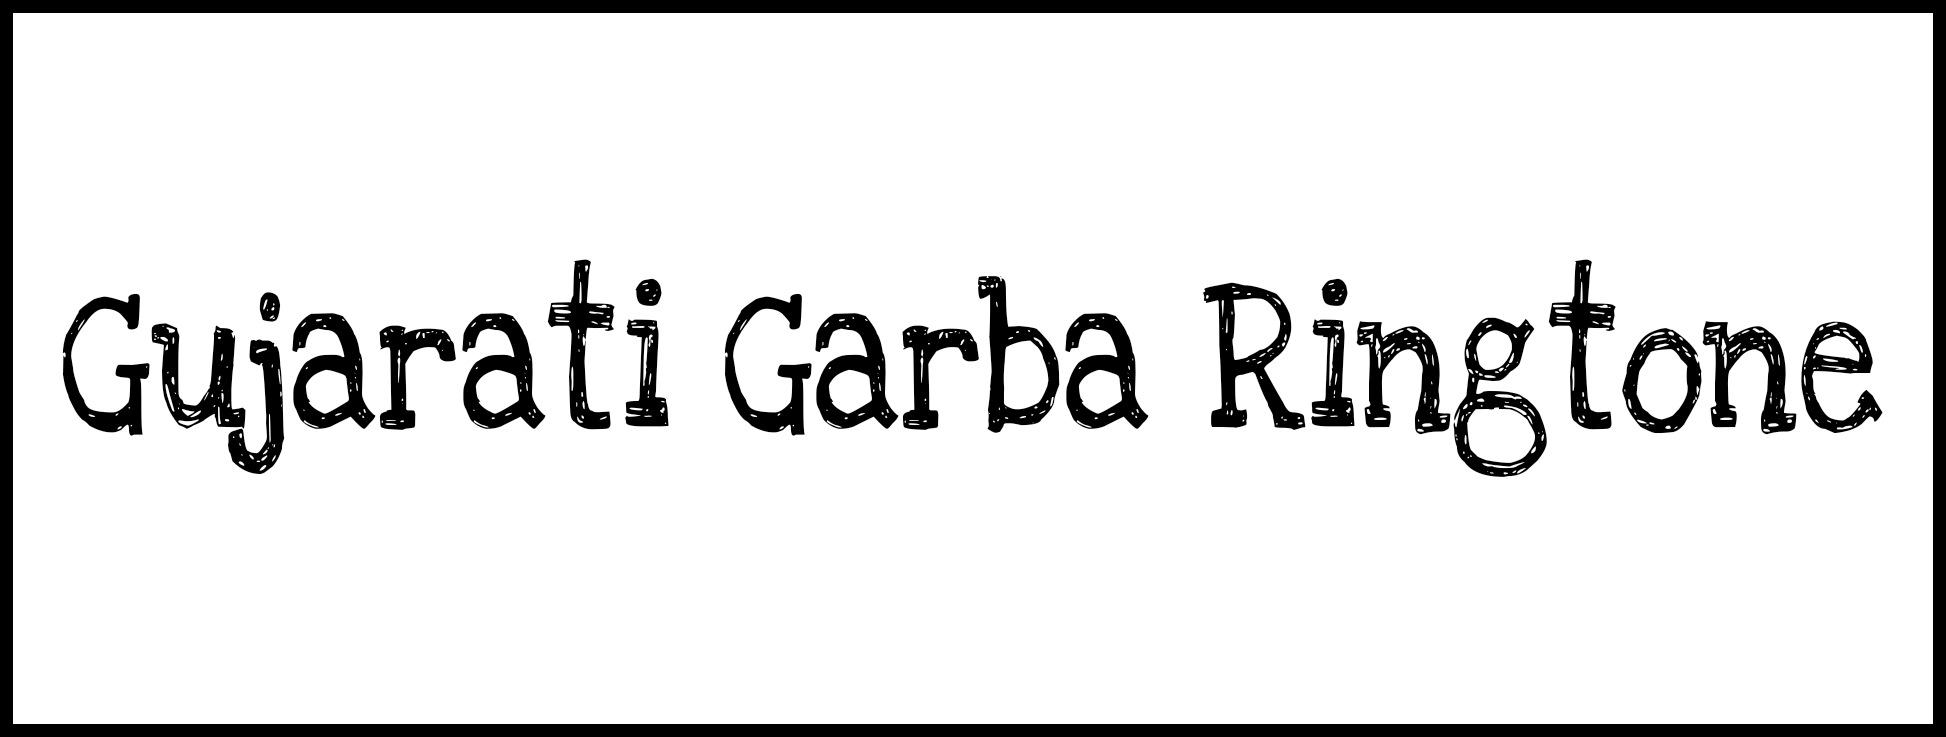 Gujarati Garba ringtone